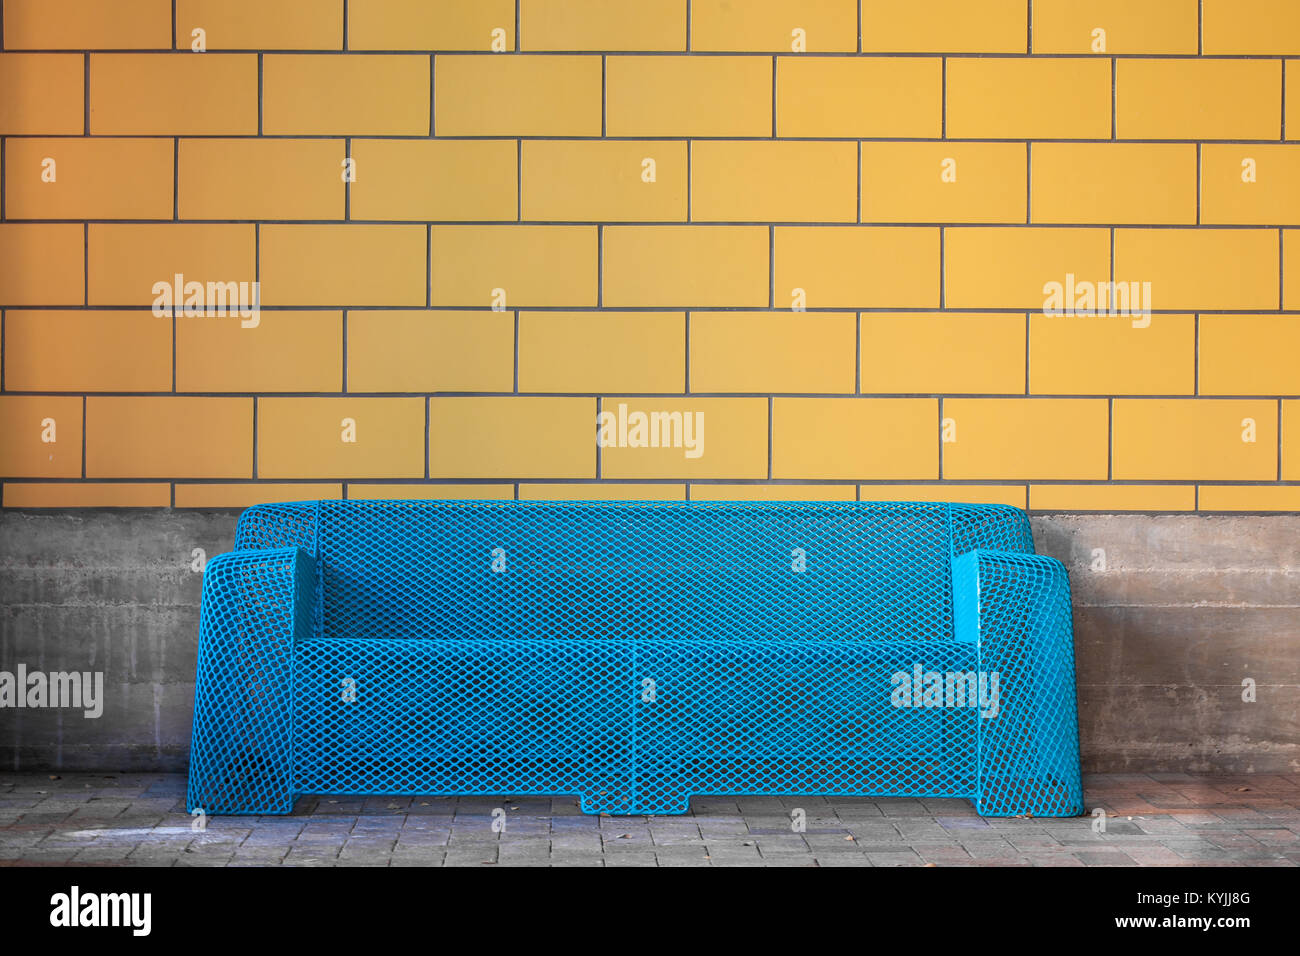 Modern blue metal sofa against yellow tile wall/ Urban furniture Stock Photo